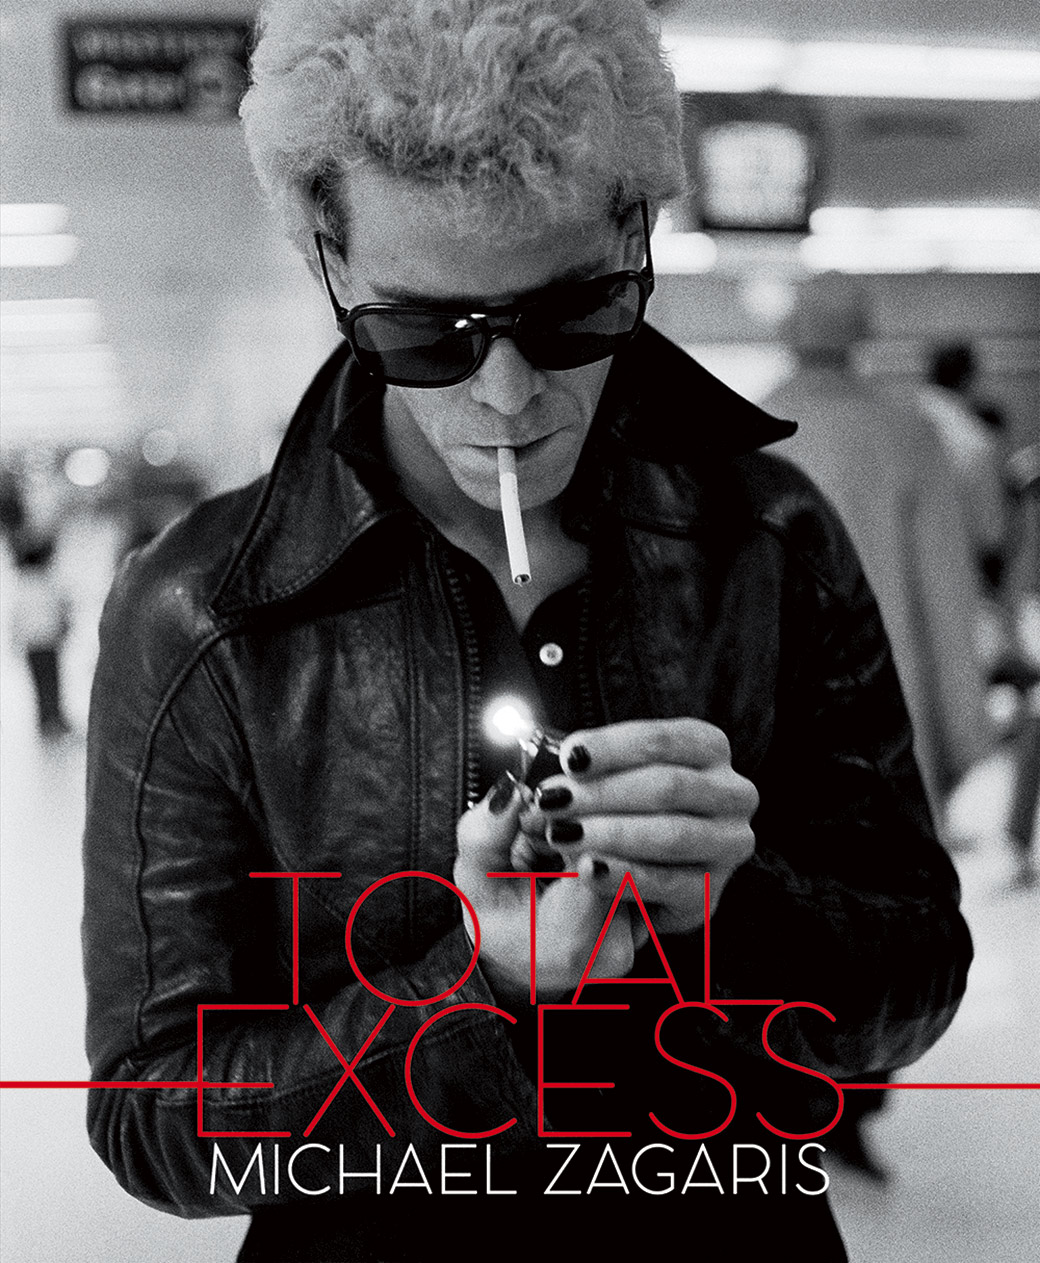 "<a href=""http://www.reelartpress.com/catalog/edition/91/total-excess-photographs-by-michael-zagaris"" target=""_blank"">Foto © Michael Zagaris / Reel Art Press</a>"